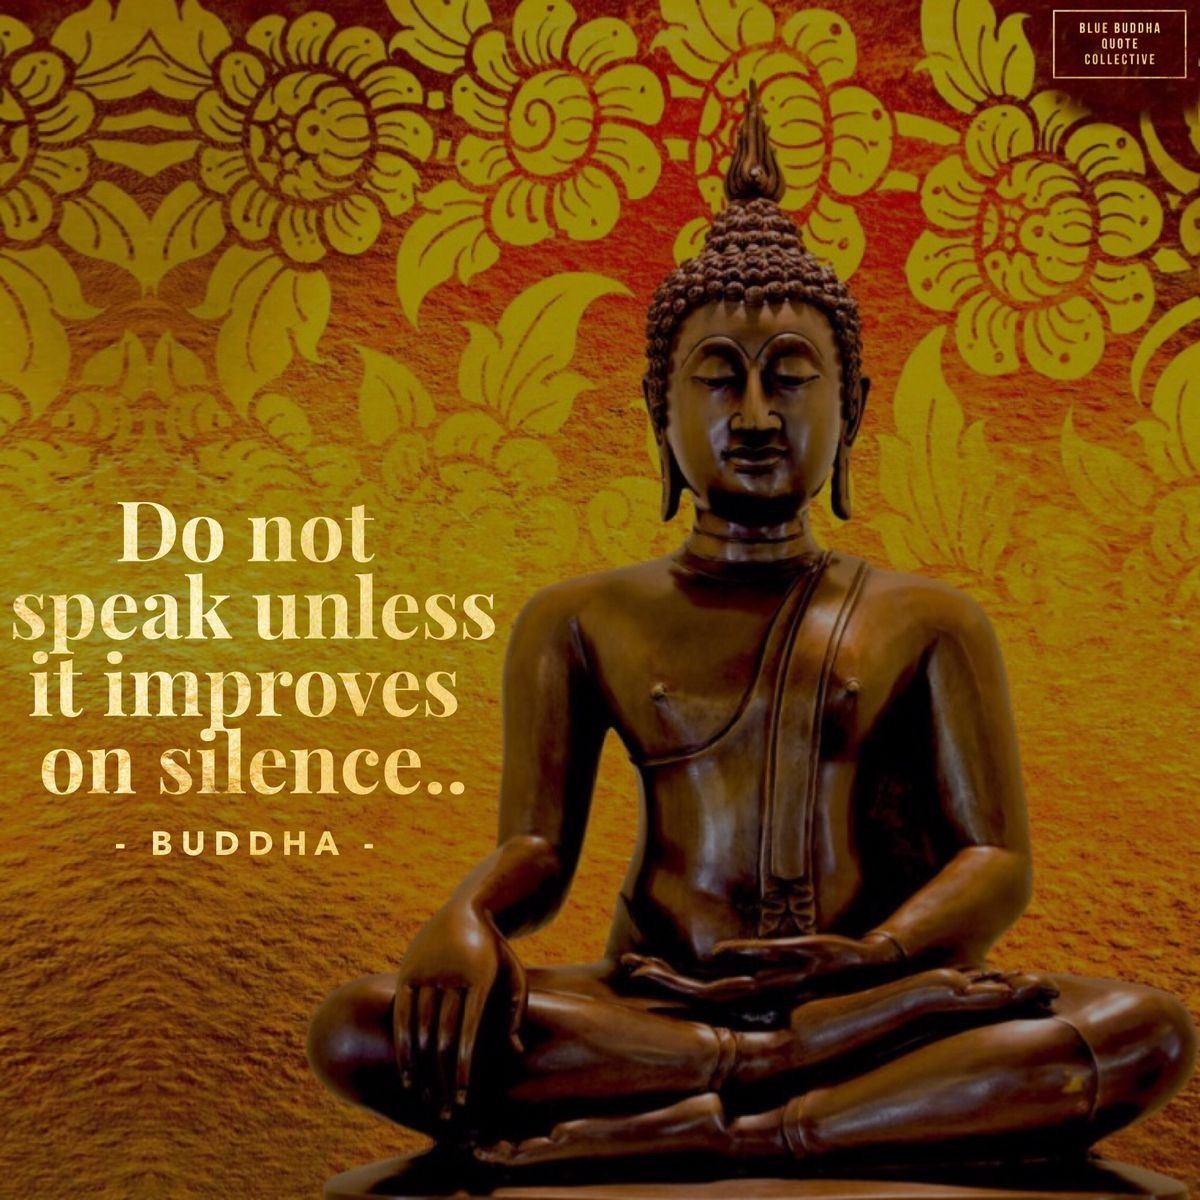 Do Not Speak Unless It Improves On Silence Thich Nhat Hanh